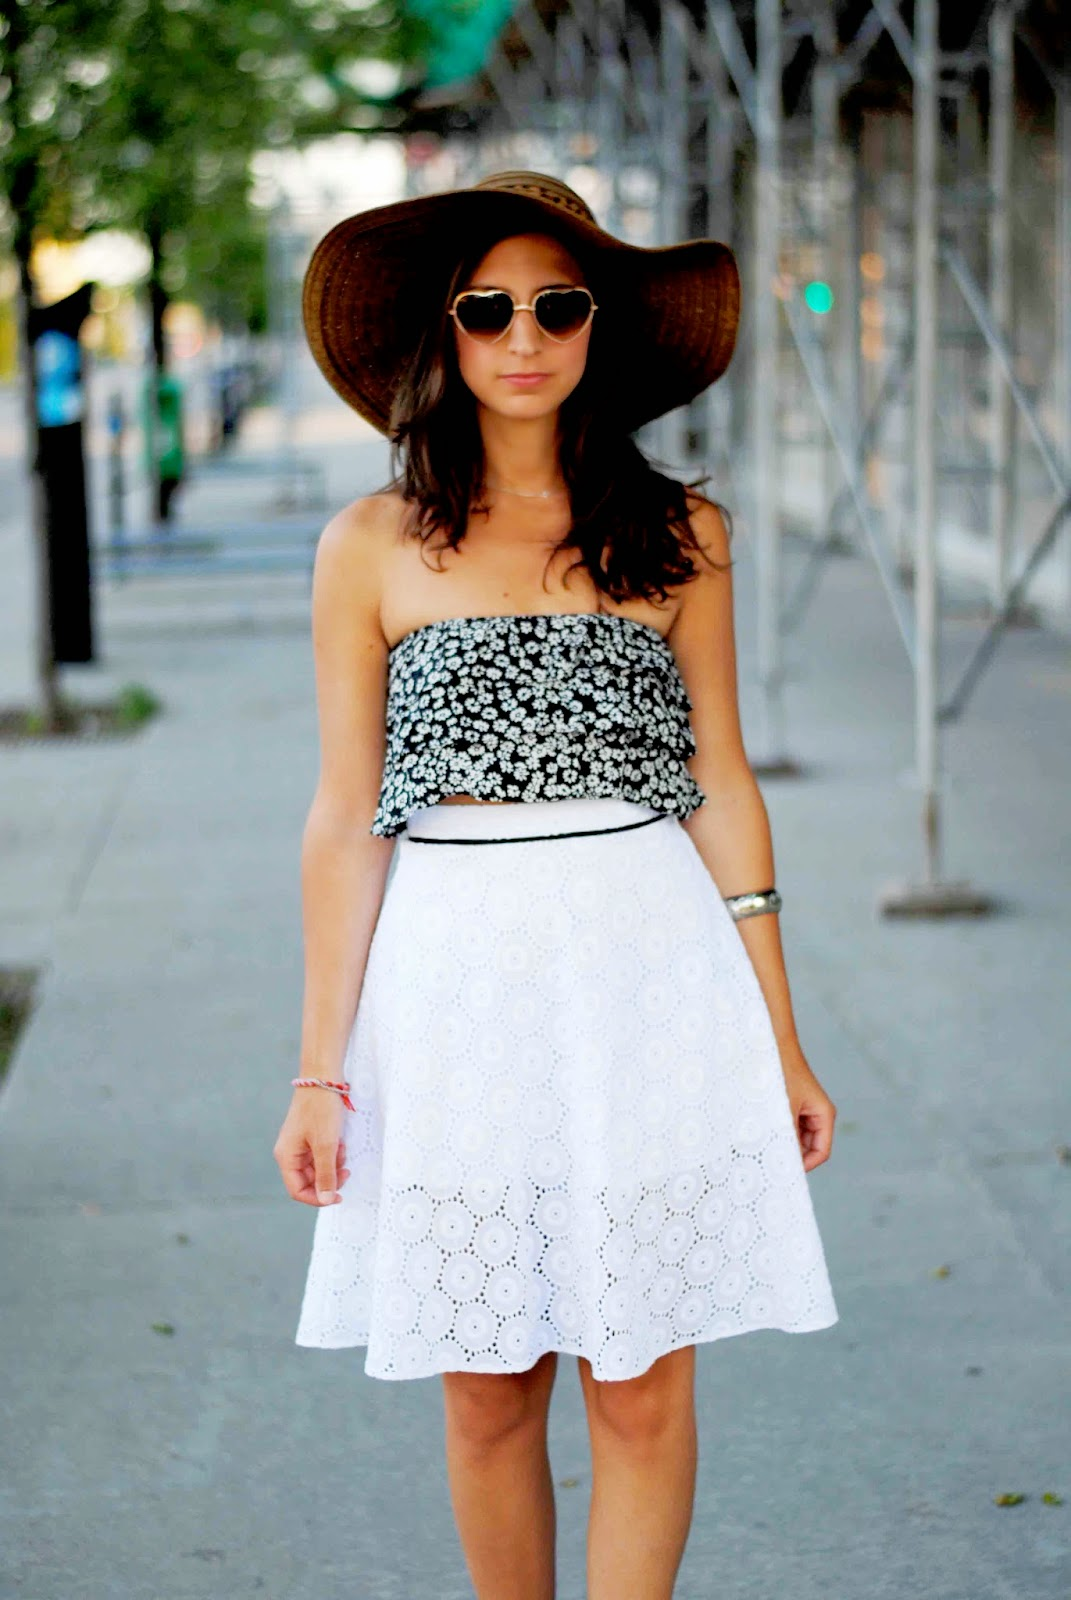 fashion summer vintage midi skirt crop tube top heart sunnies sun hat